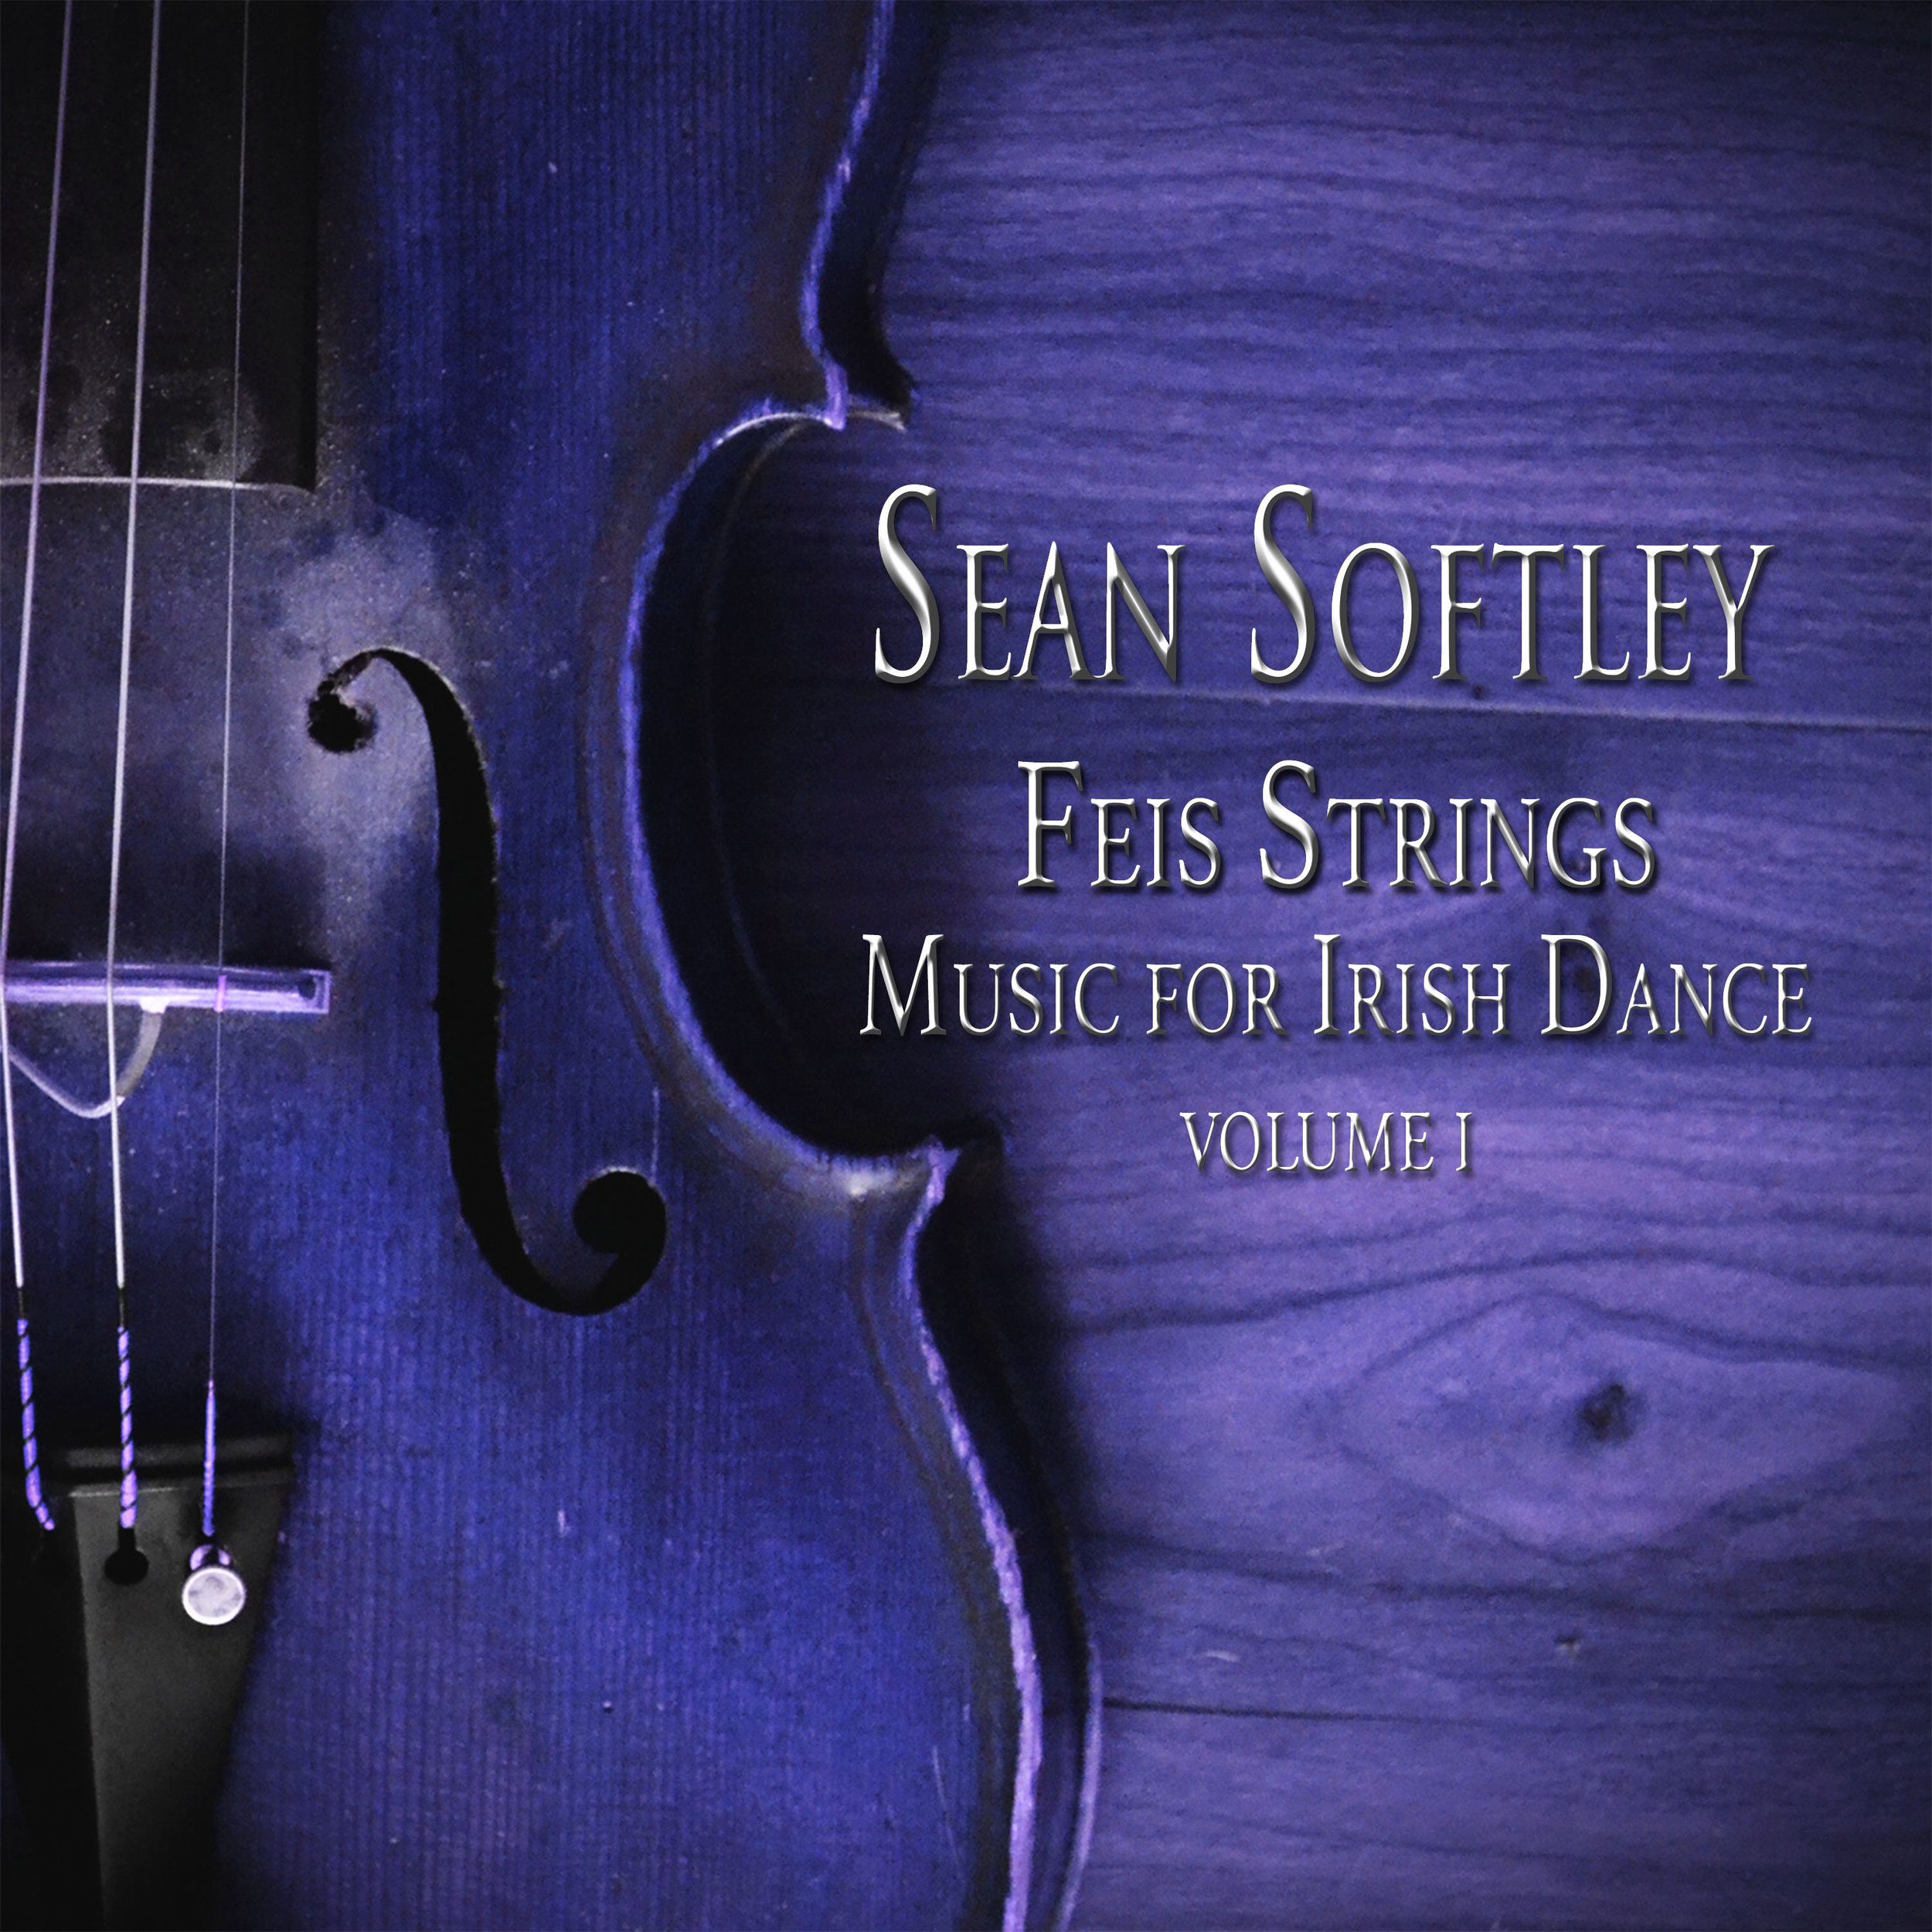 Feis Strings: Music for Irish Dance - Vol. 1  features all tracks needed for Irish Dance competition and feisianna. All tracks are performed to the correct tempos.  The album was created to be correct for practice and performance, but also to be artistically and musically appealing for the non-dancer as well!  Sean Softley performs all tracks with his signature energetic fiddle style and guitar accompaniment. Featuring both original compositions and traditional tunes.   Find it today on all digital music platforms!